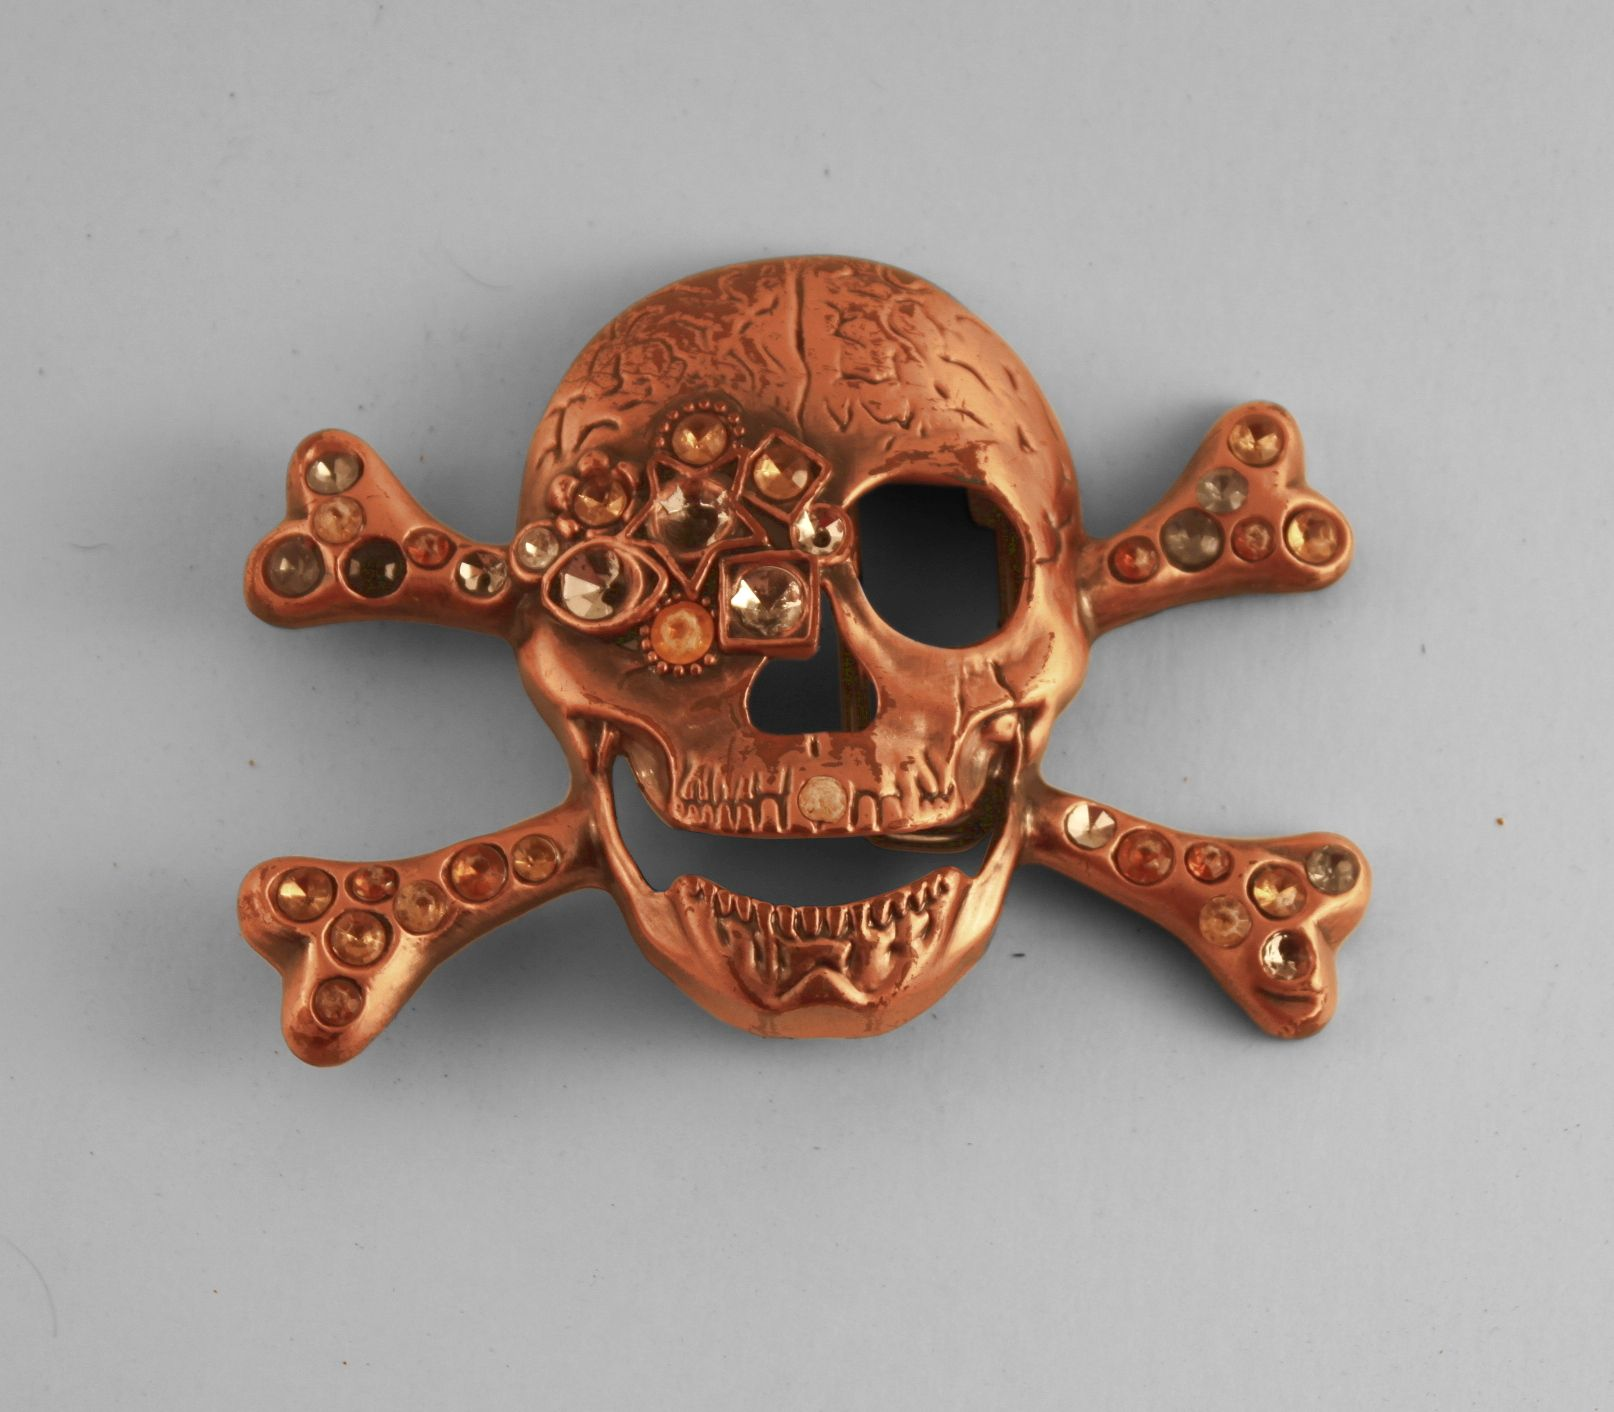 Skull design, metal belt buckle